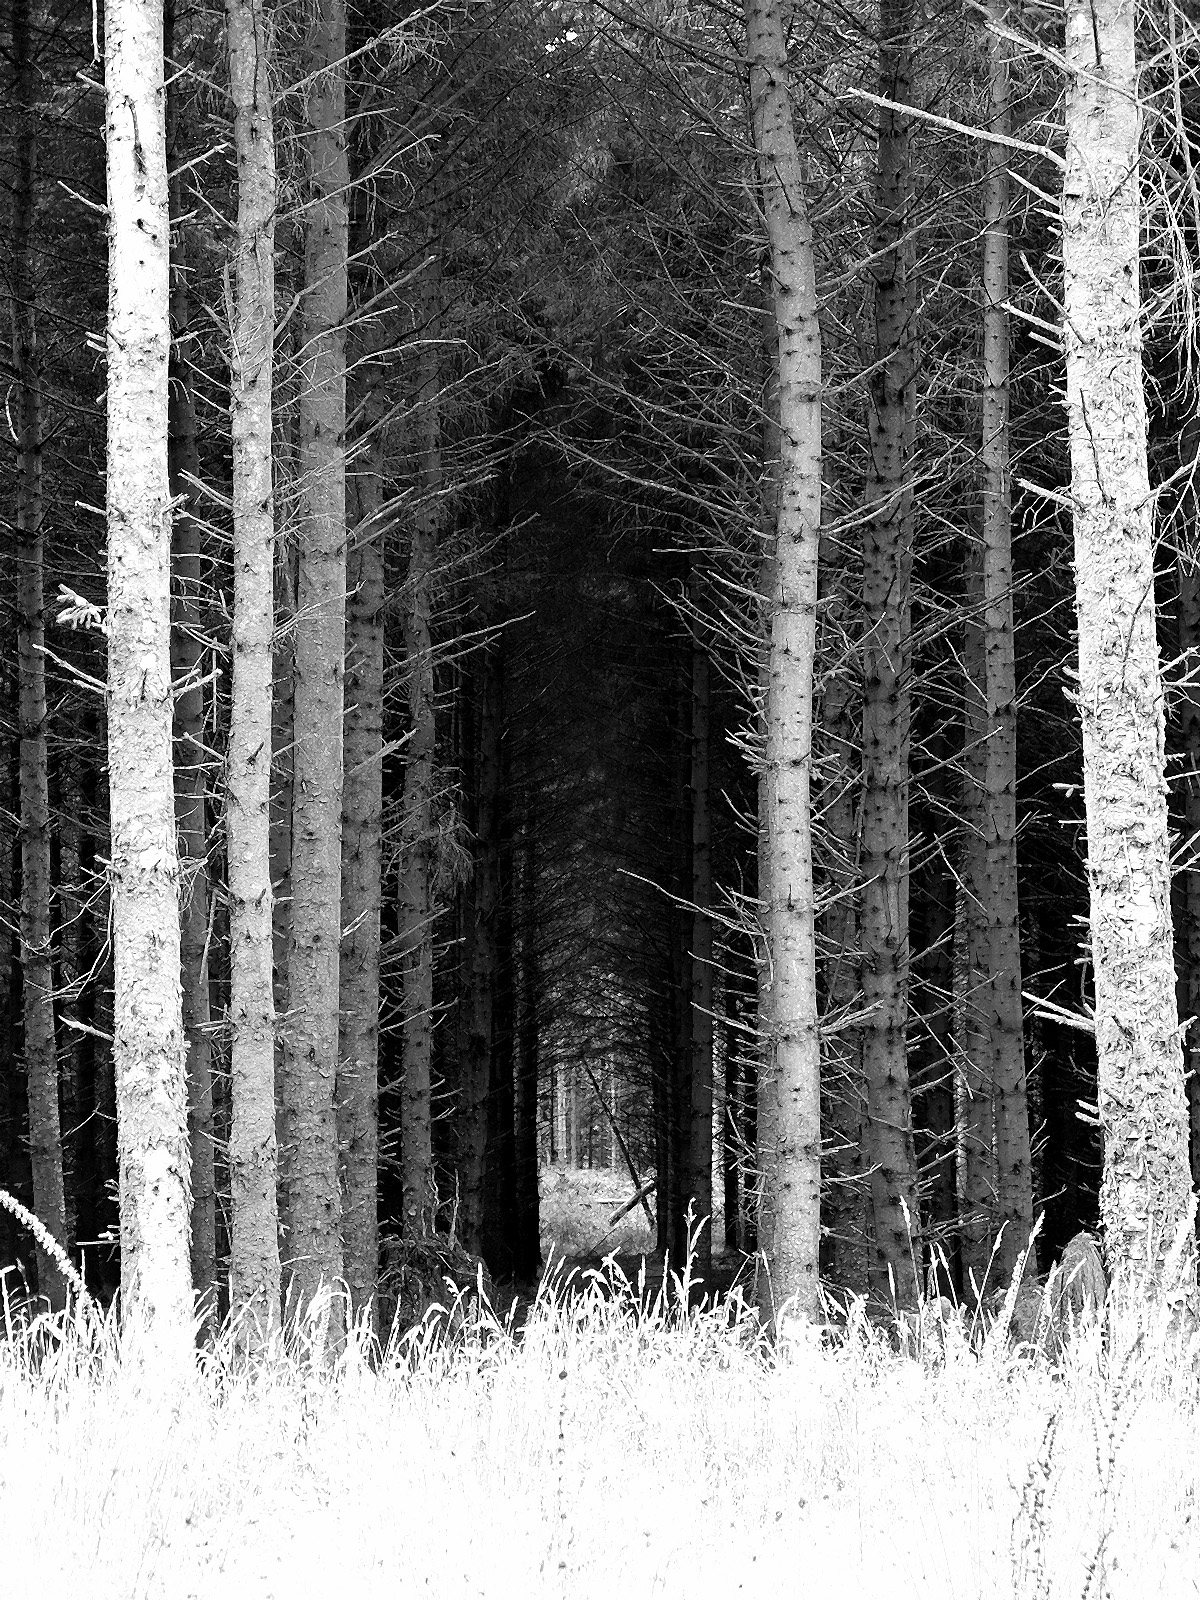 Spooky Wallpaper Photo Of Forest On Dartmoor England Like A Scene From Horror Movie